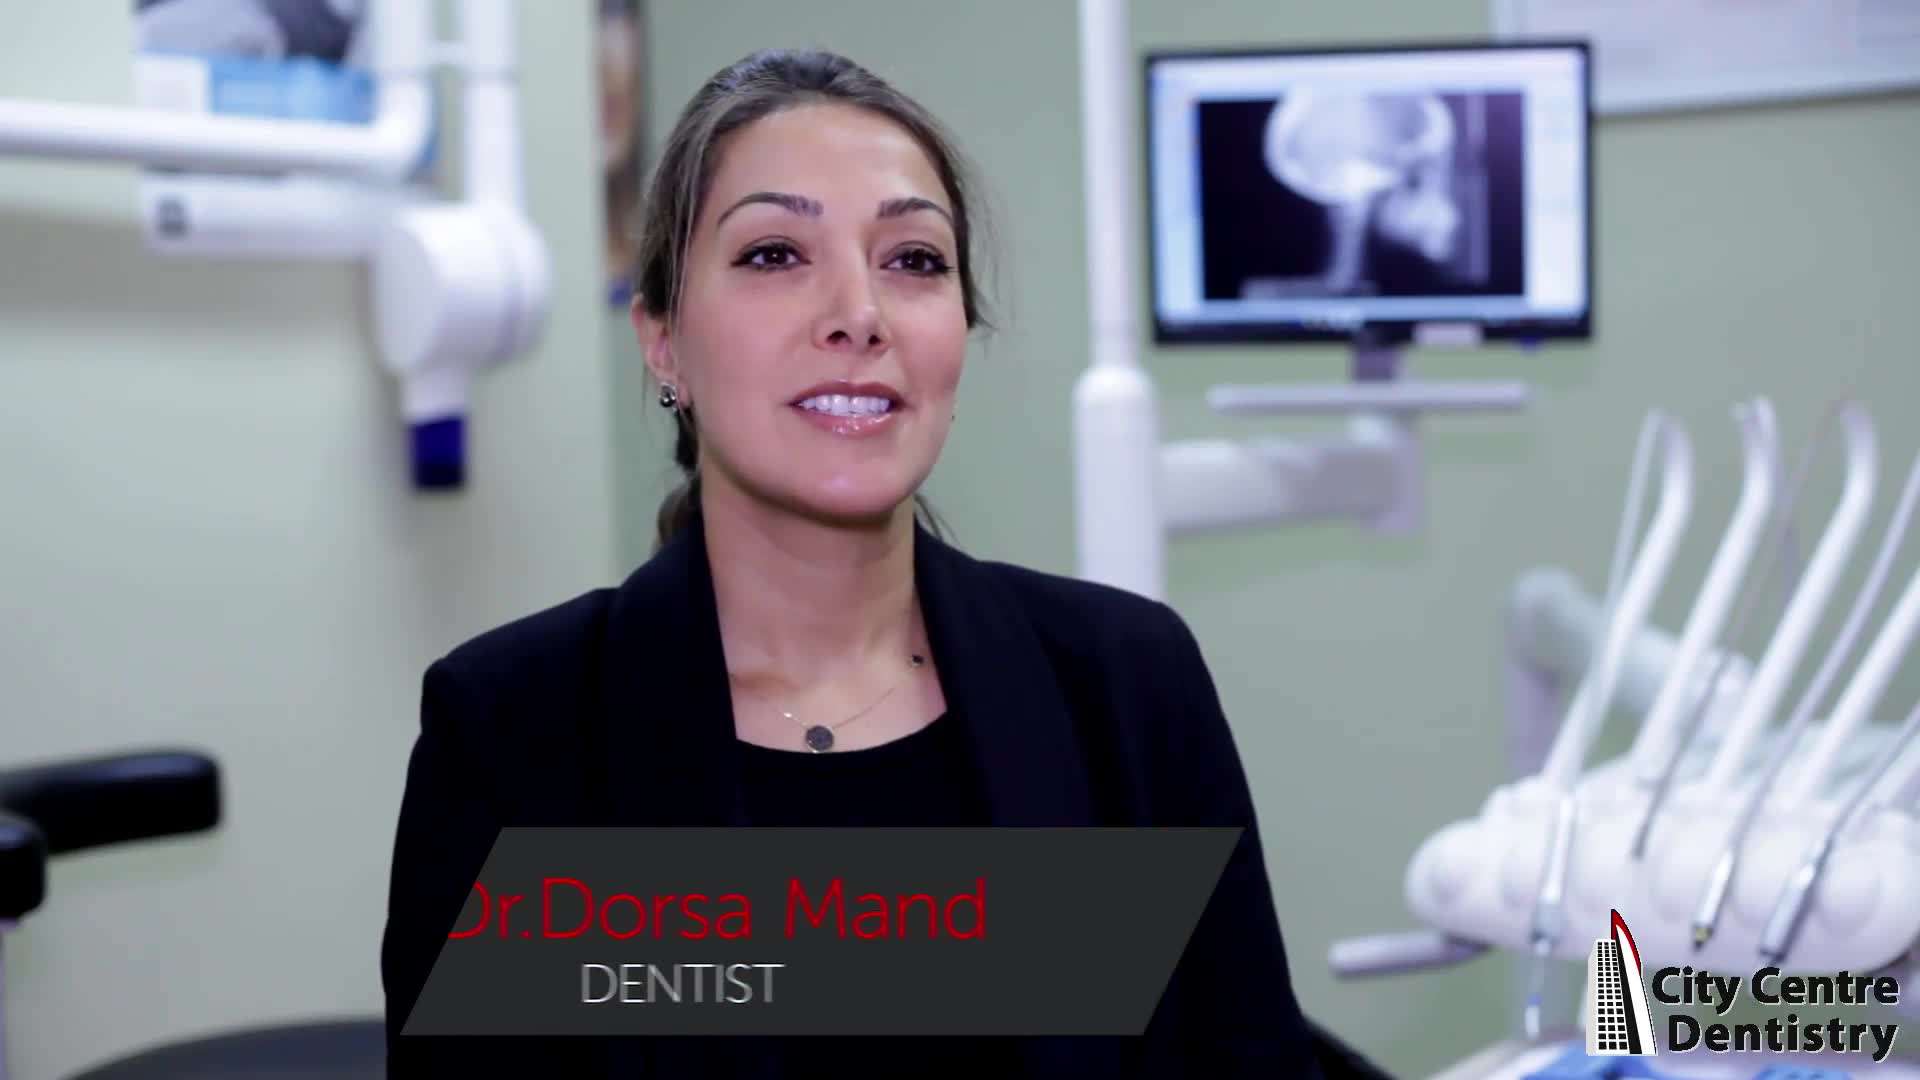 City Centre Dentistry - Dentists - 6045852001